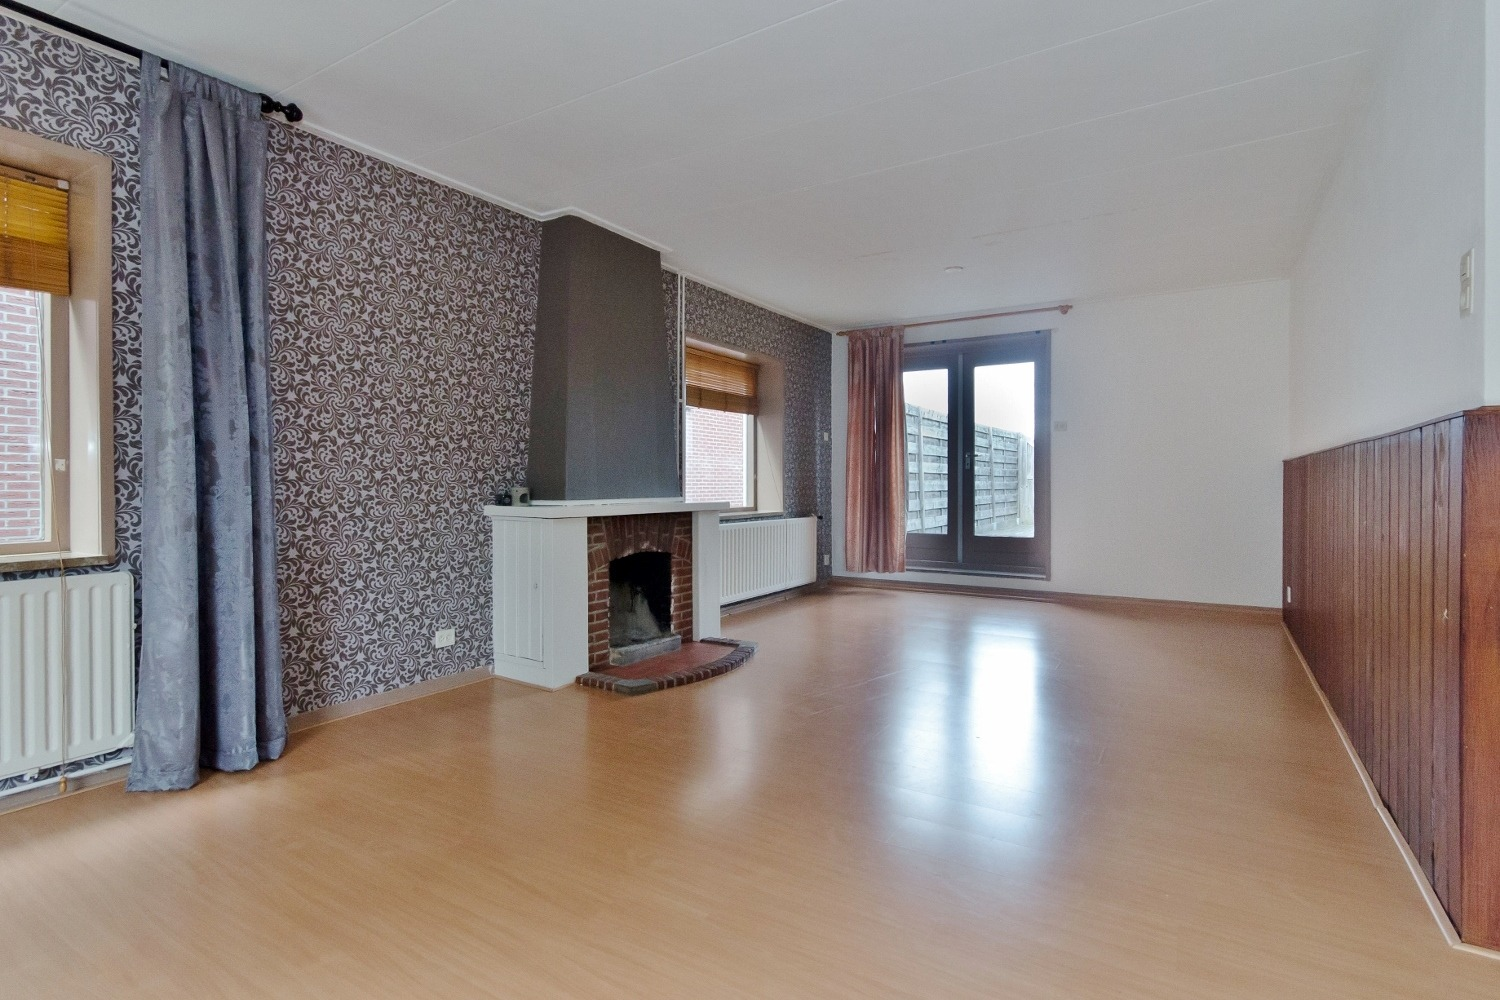 Medium property photo - Grotestraat 202, 7443 BS Nijverdal